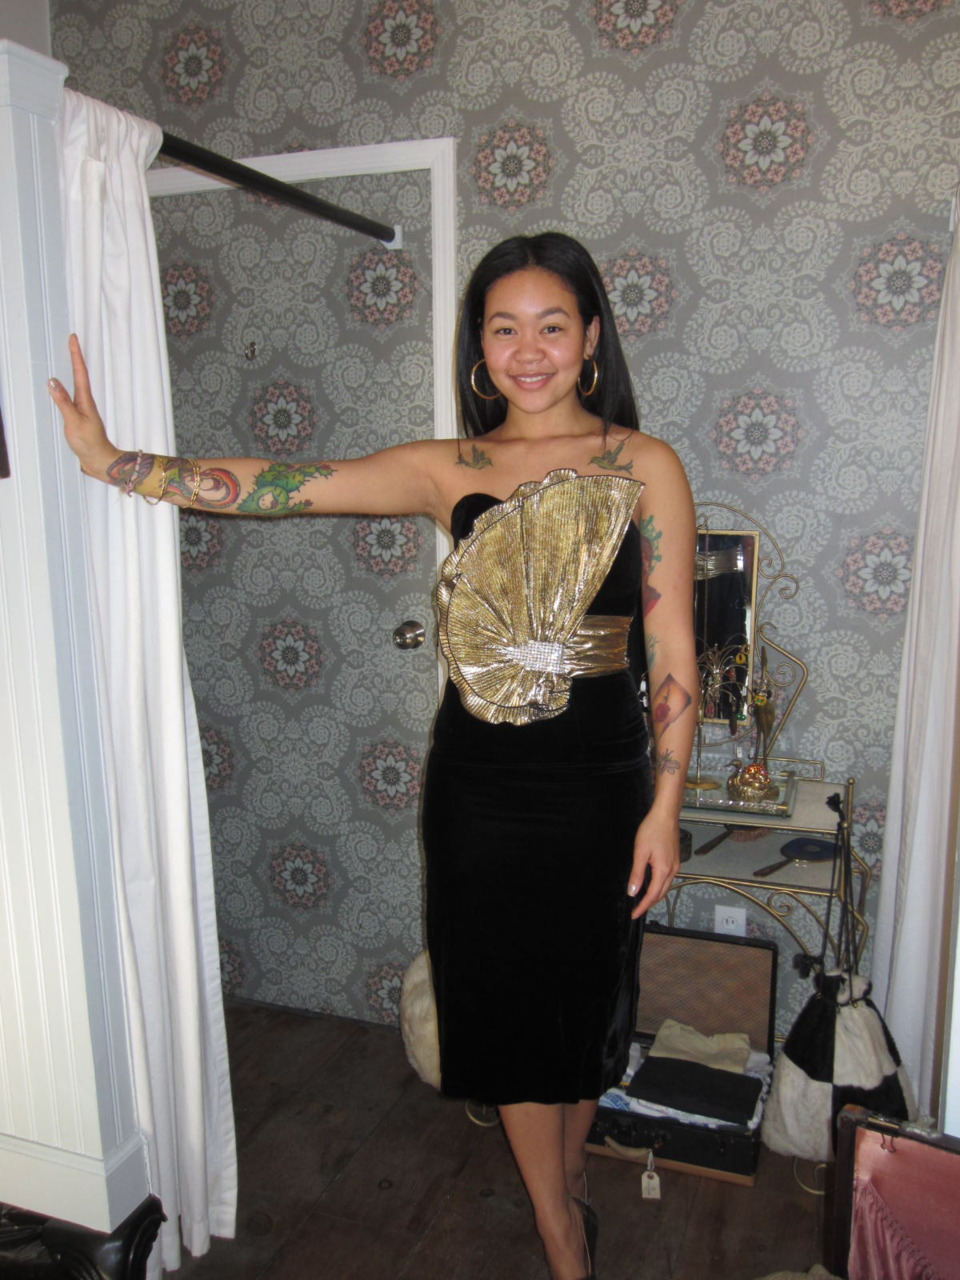 Holiday party dresses are here! Sophieis modeling one of our new arrivals…VaVaVoom 80's glamour!